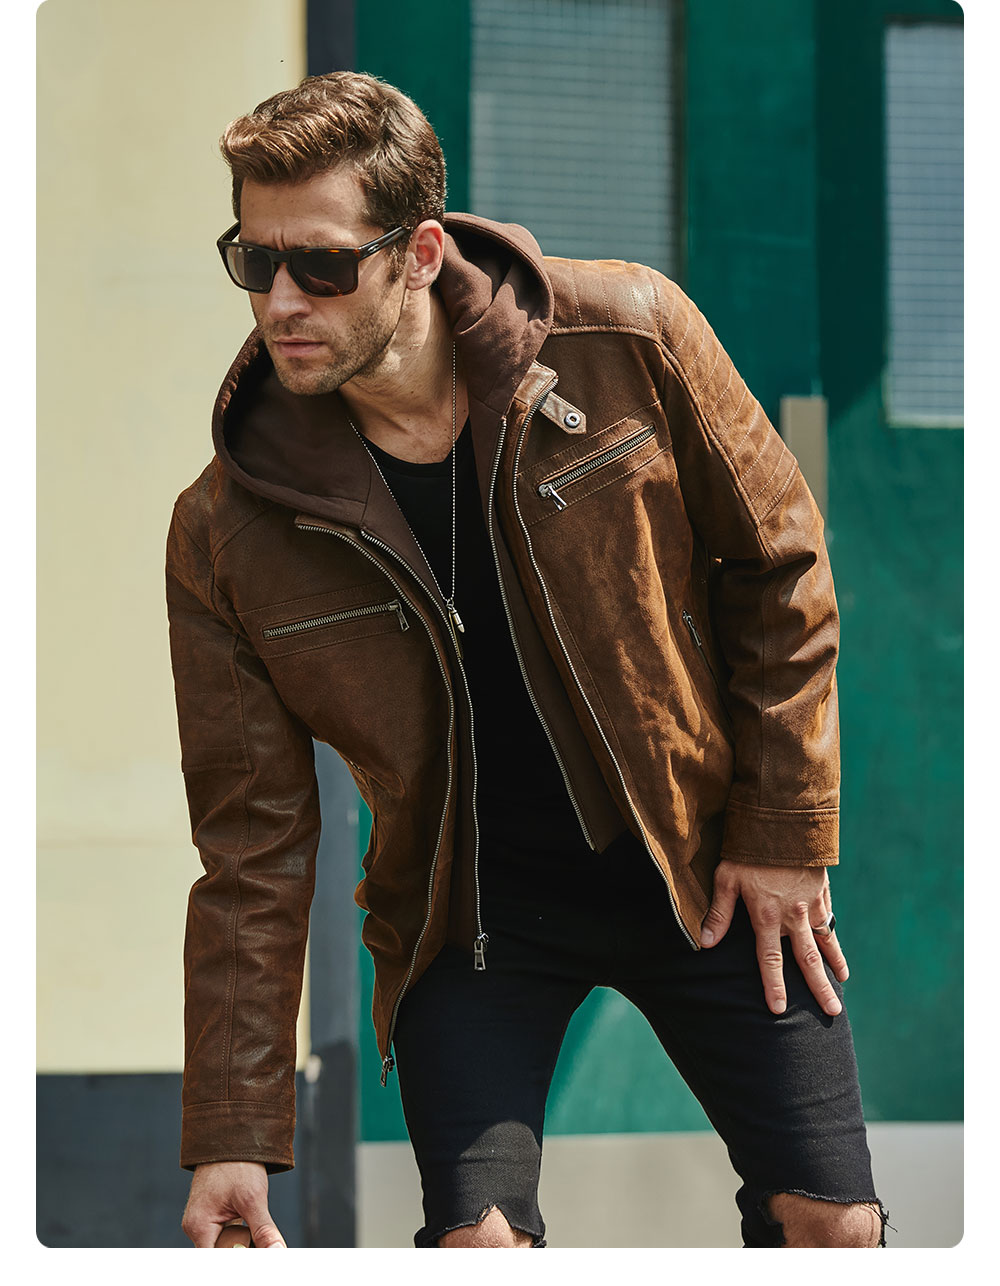 Hb7a4daaac4b244399294e0284ca40766J New Men's Leather Jacket, Brown Jacket Made Of Genuine Leather With A Removable Hood, Warm Leather Jacket For Men For The Winter